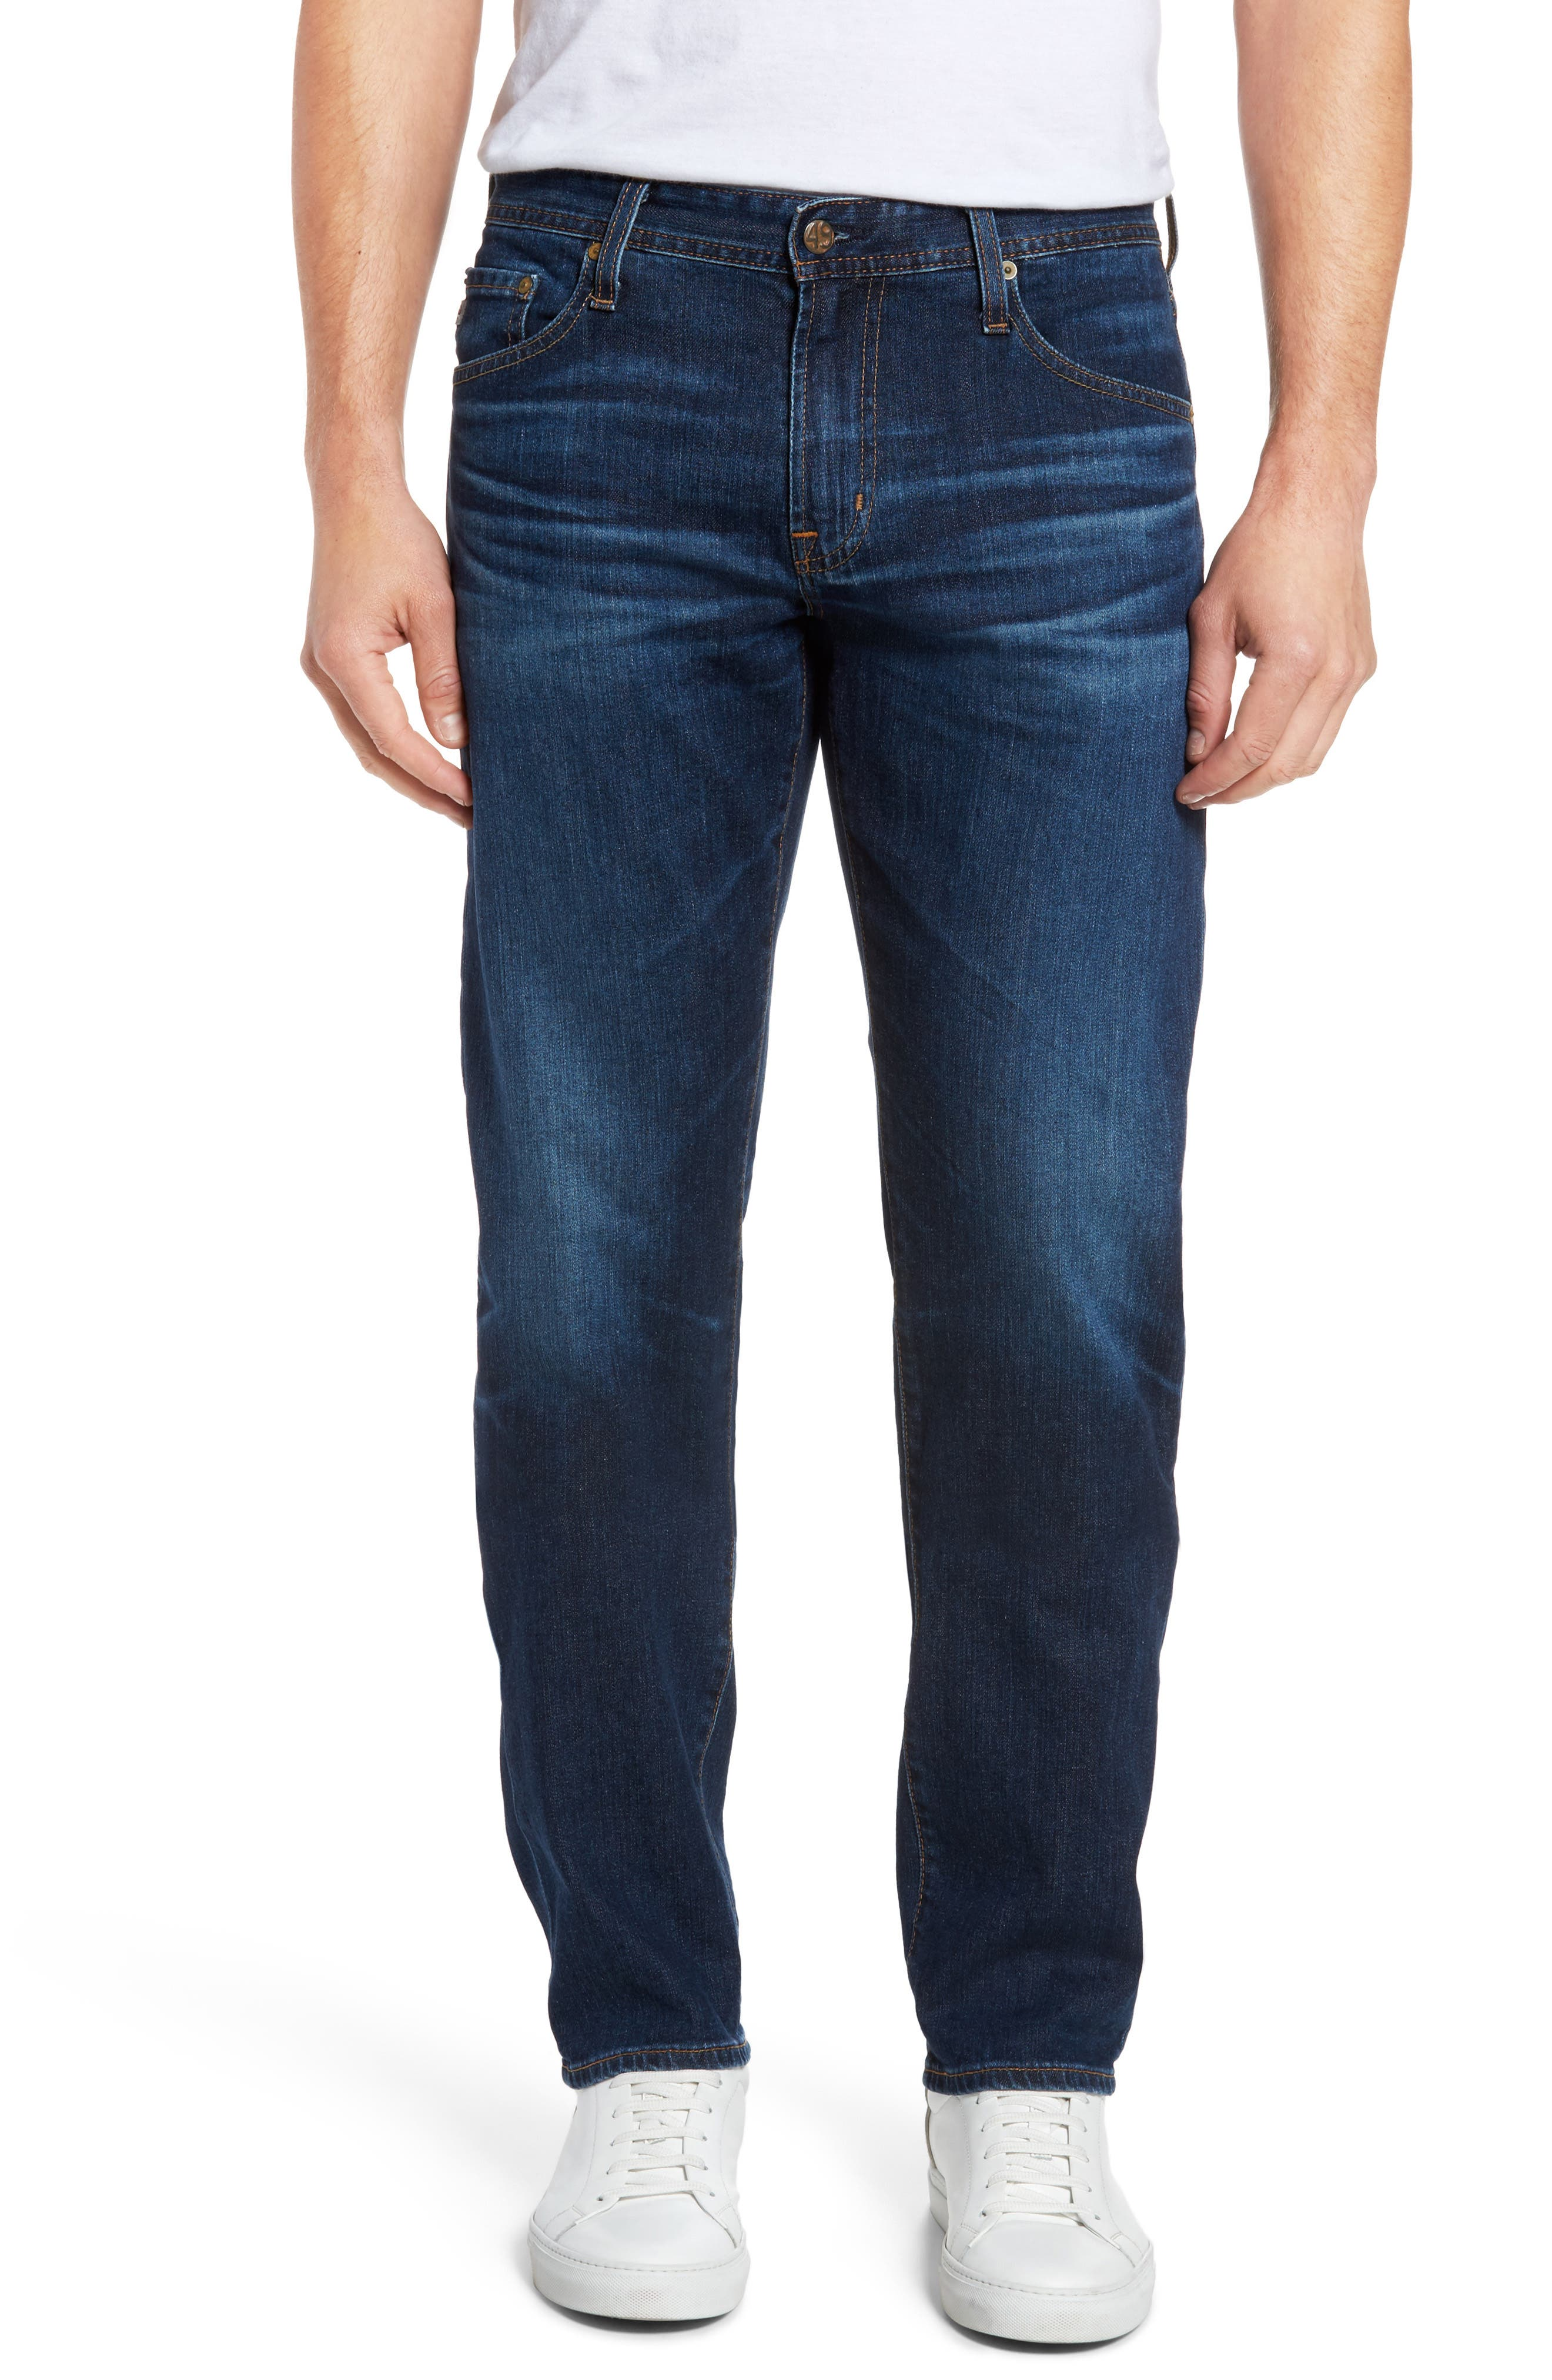 Graduate Slim Straight Fit Jeans,                         Main,                         color, 6 Years Projector